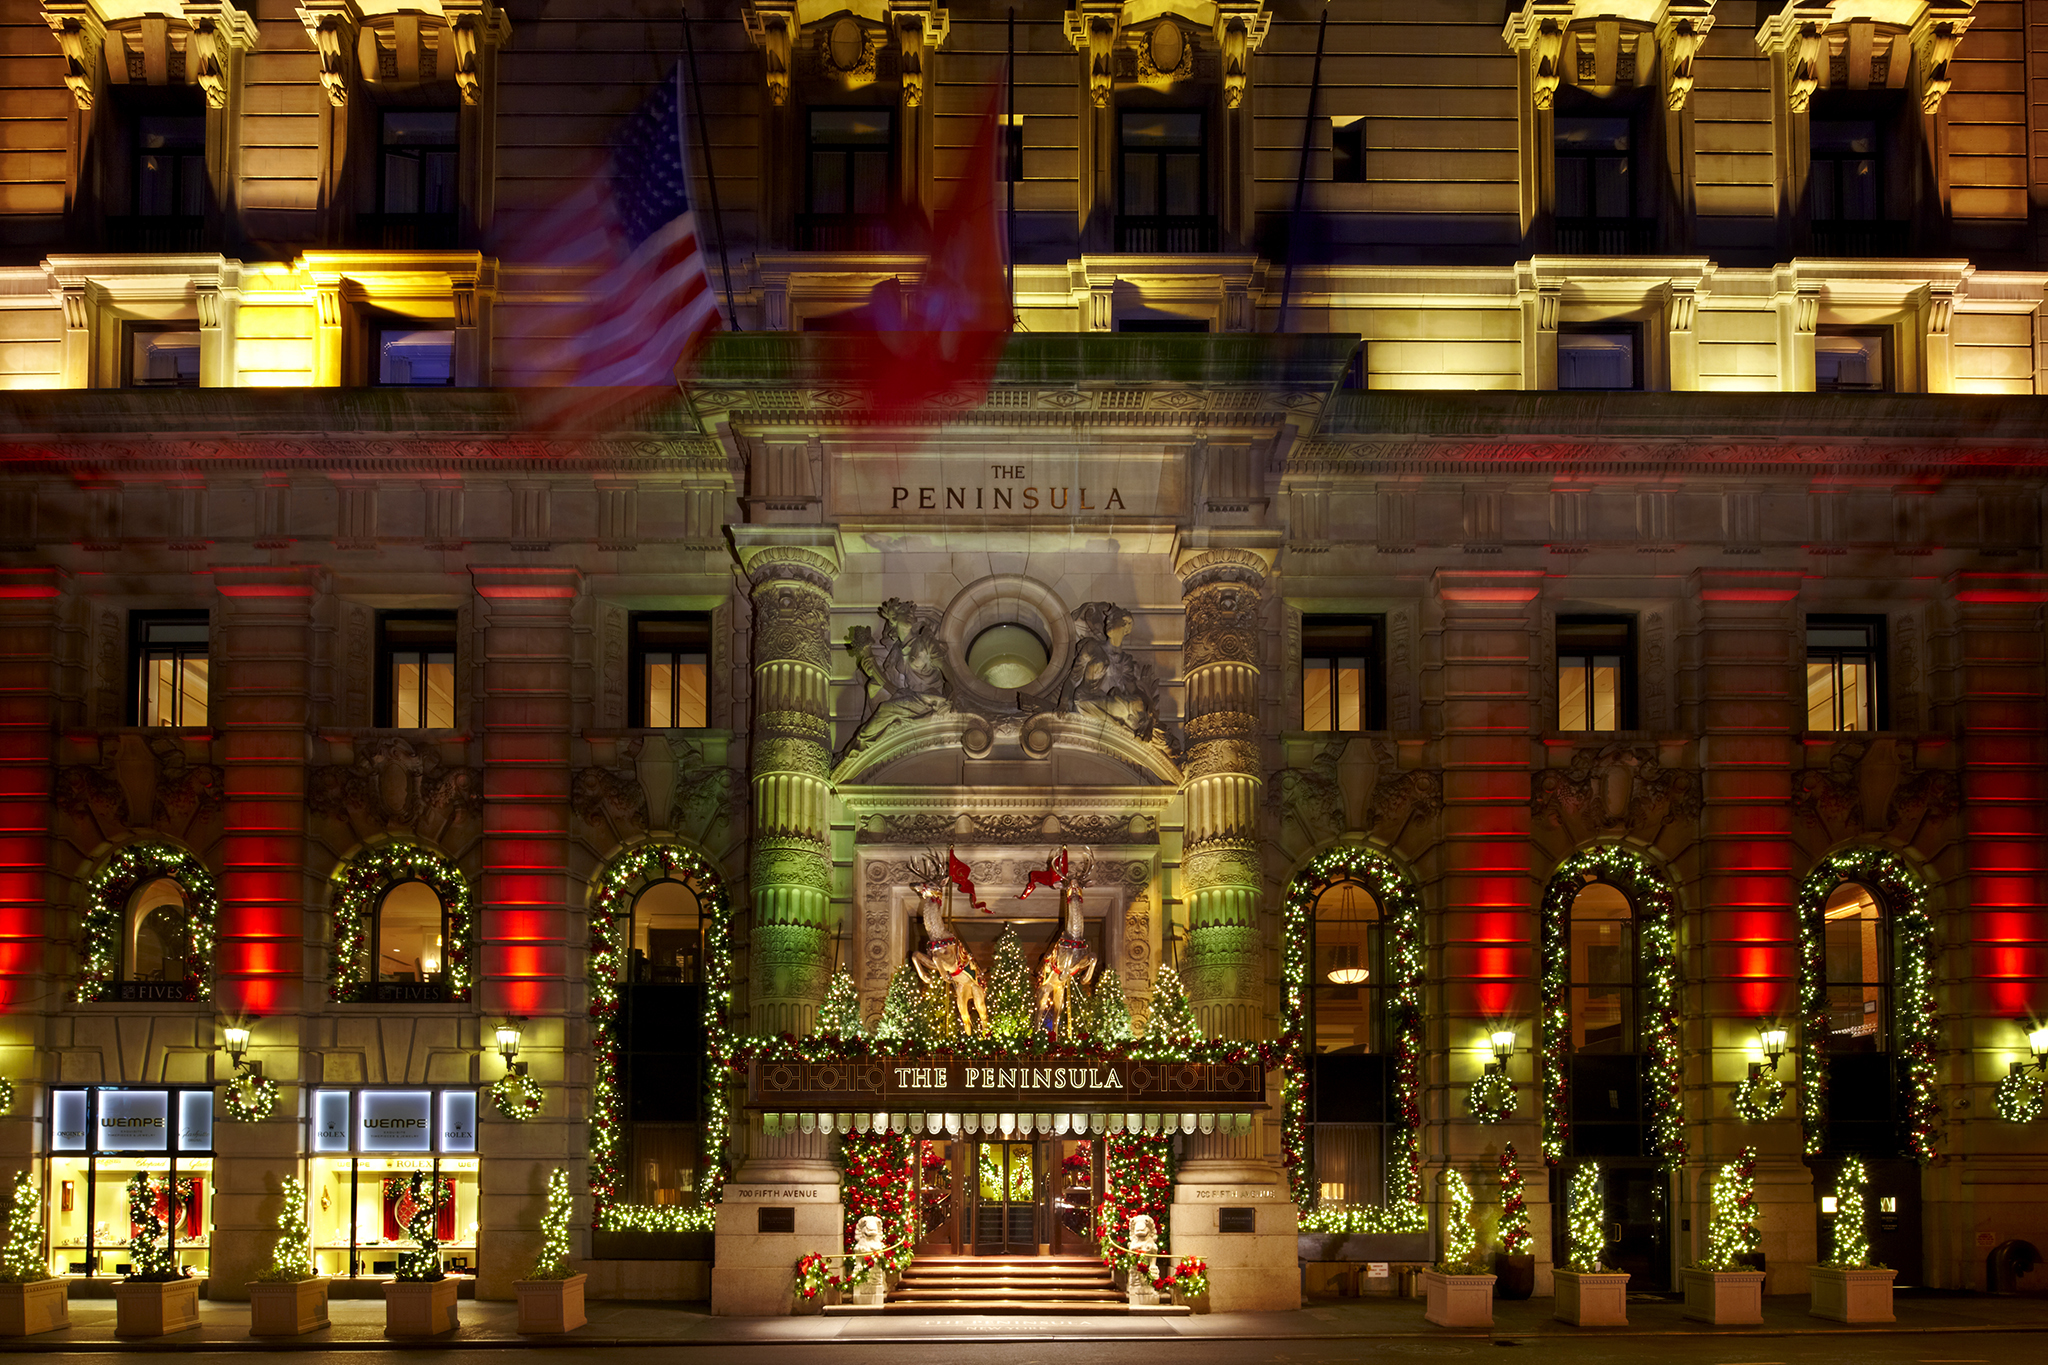 Elegant The Peninsula New York